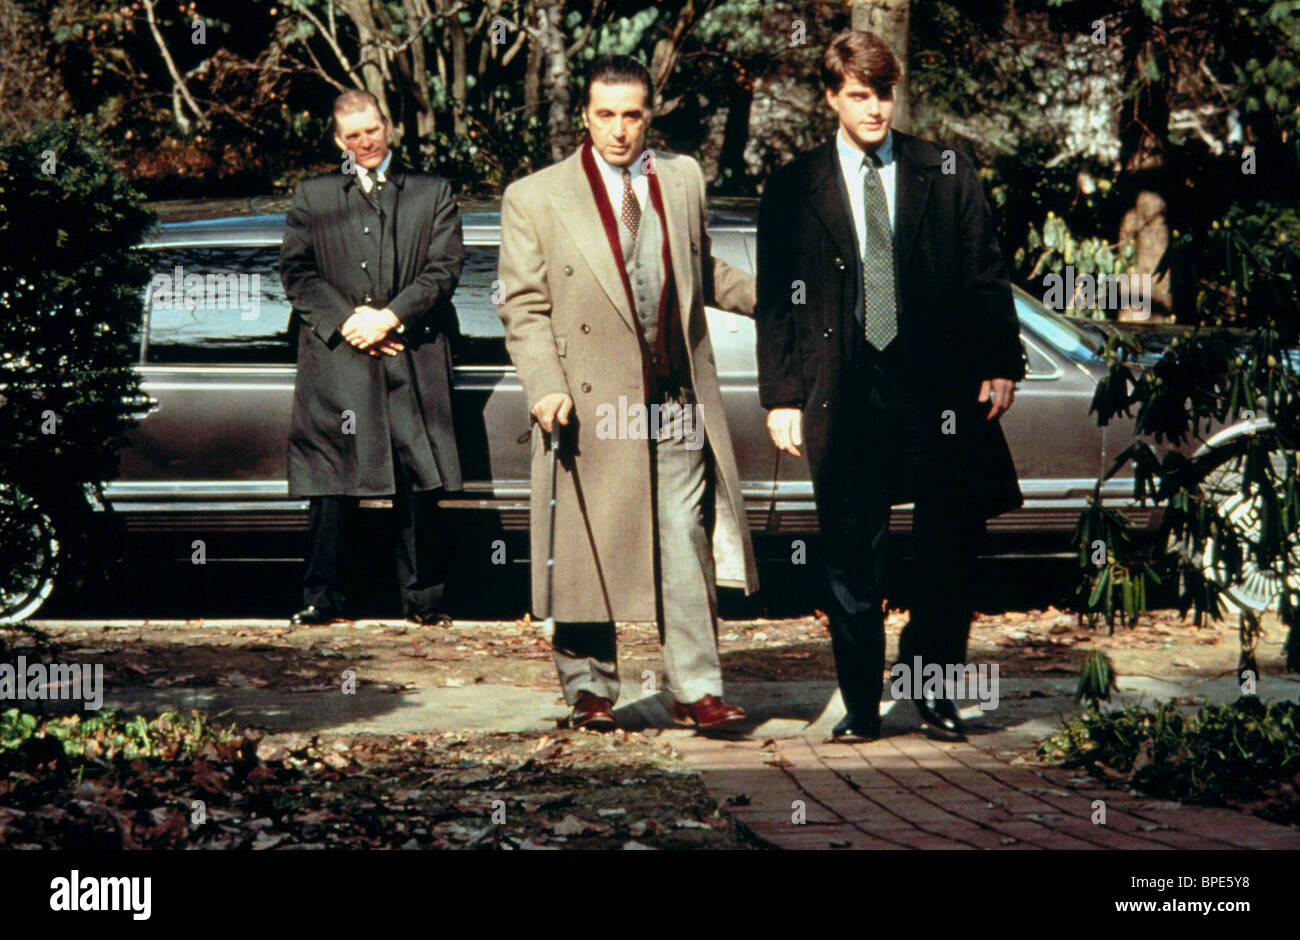 Al Pacino Chris O Donnell Scent Of A Woman 1992 Stock Photo Alamy